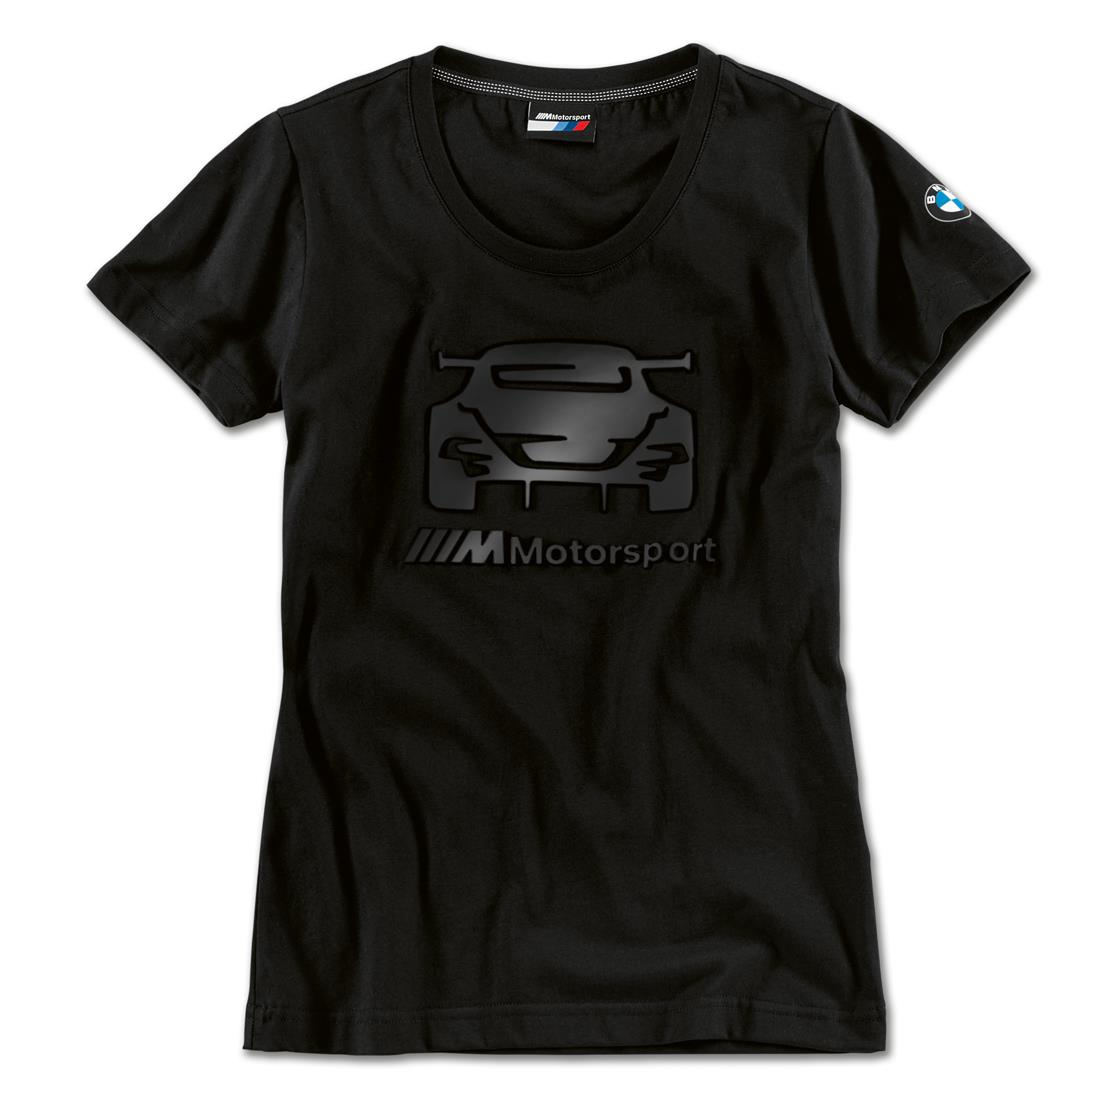 BMW M Motorsport Tshirt Women Graphic Taglia M